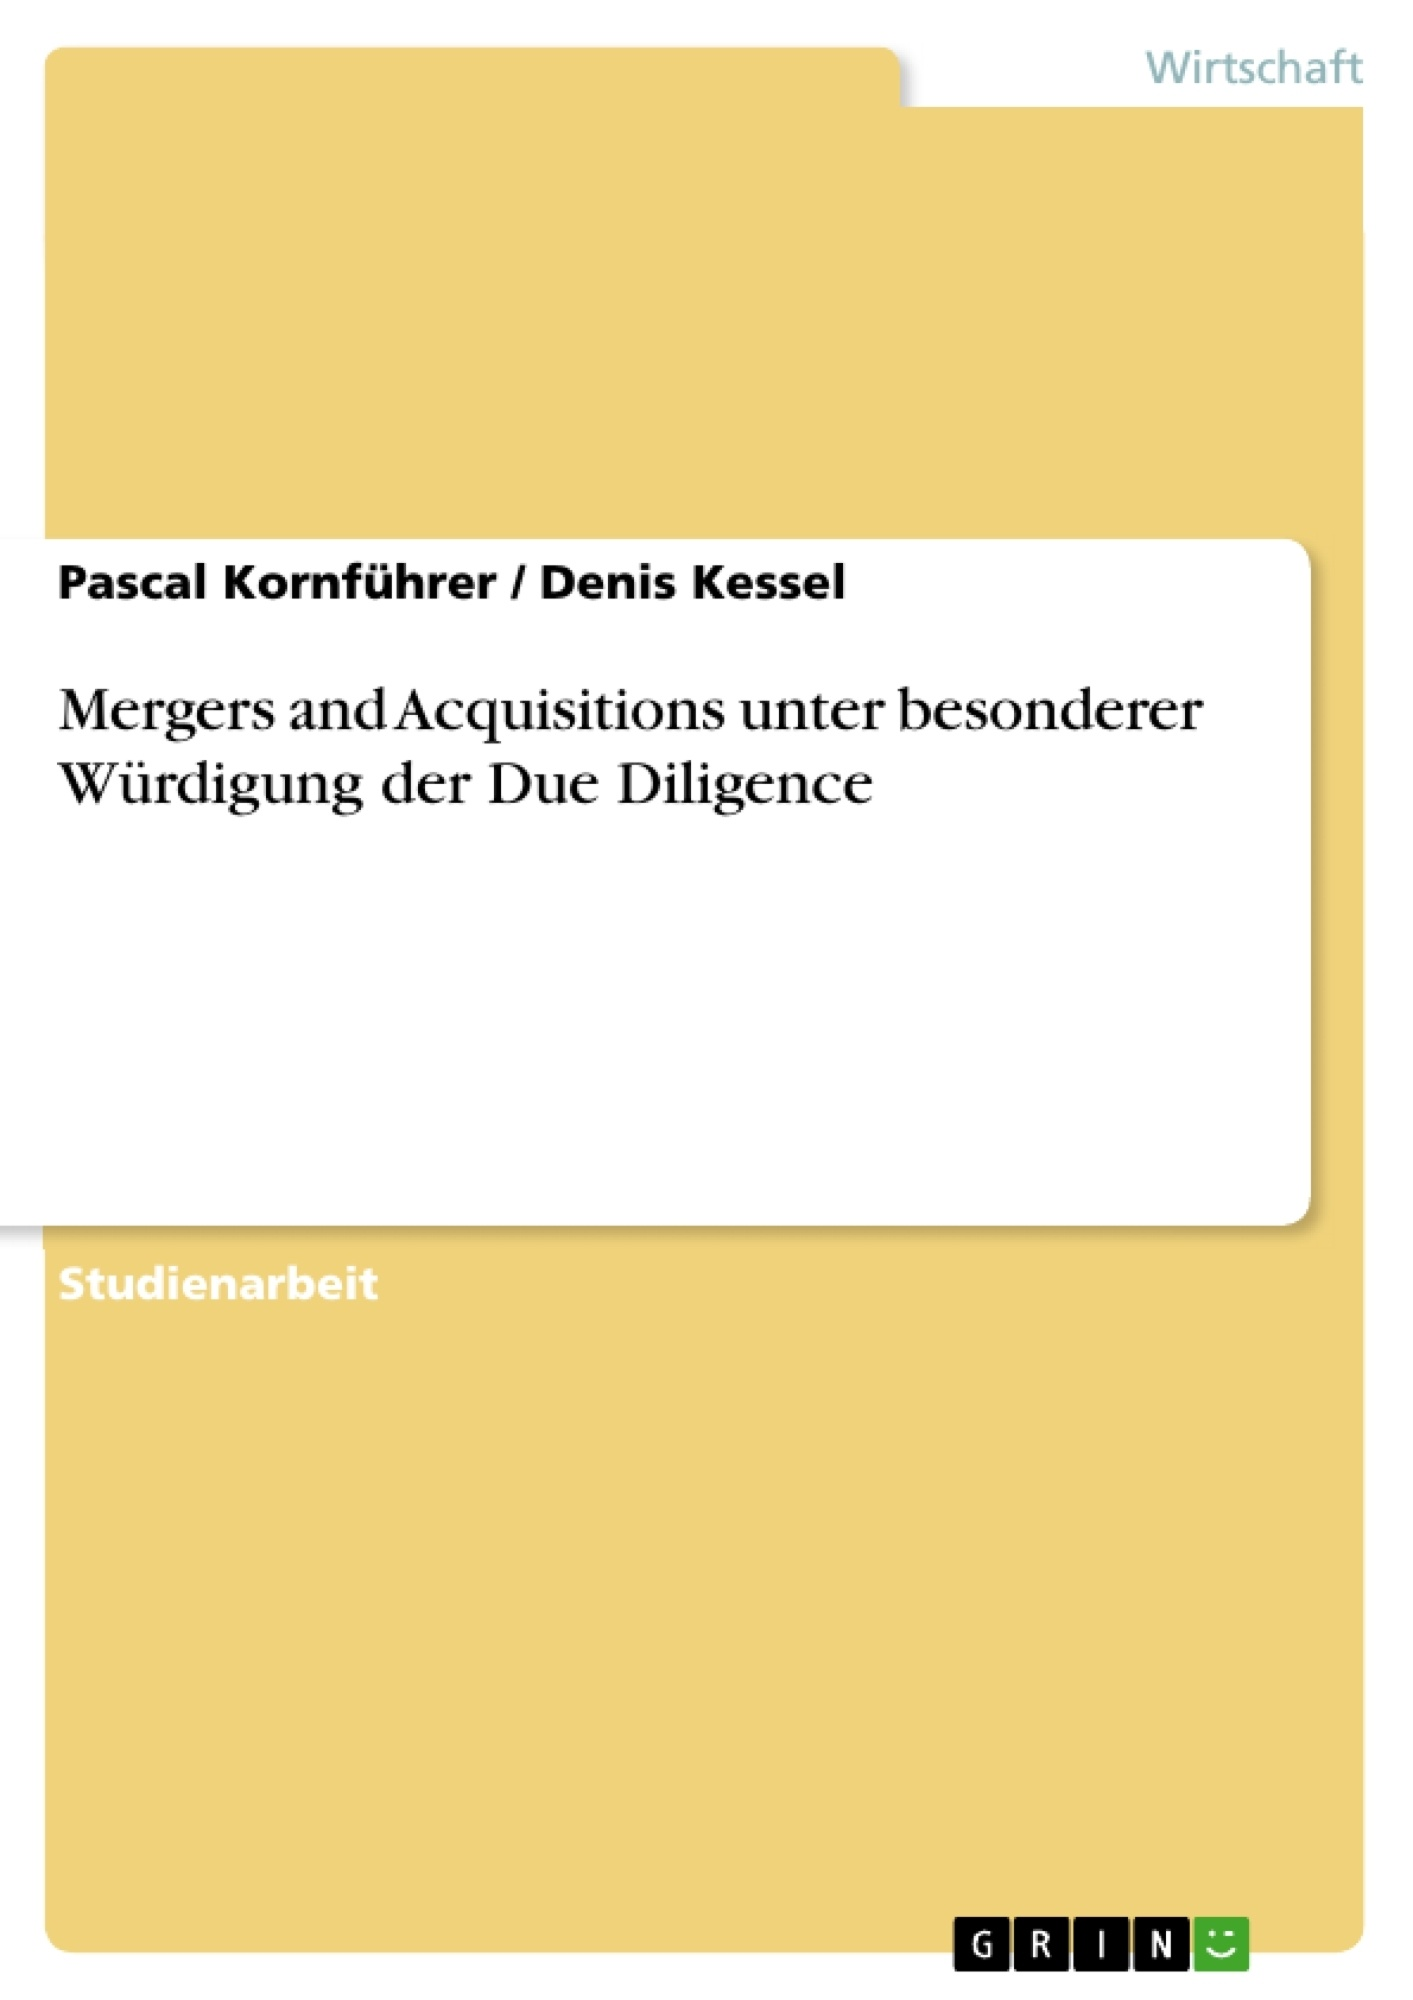 Titel: Mergers and Acquisitions unter besonderer Würdigung der Due Diligence